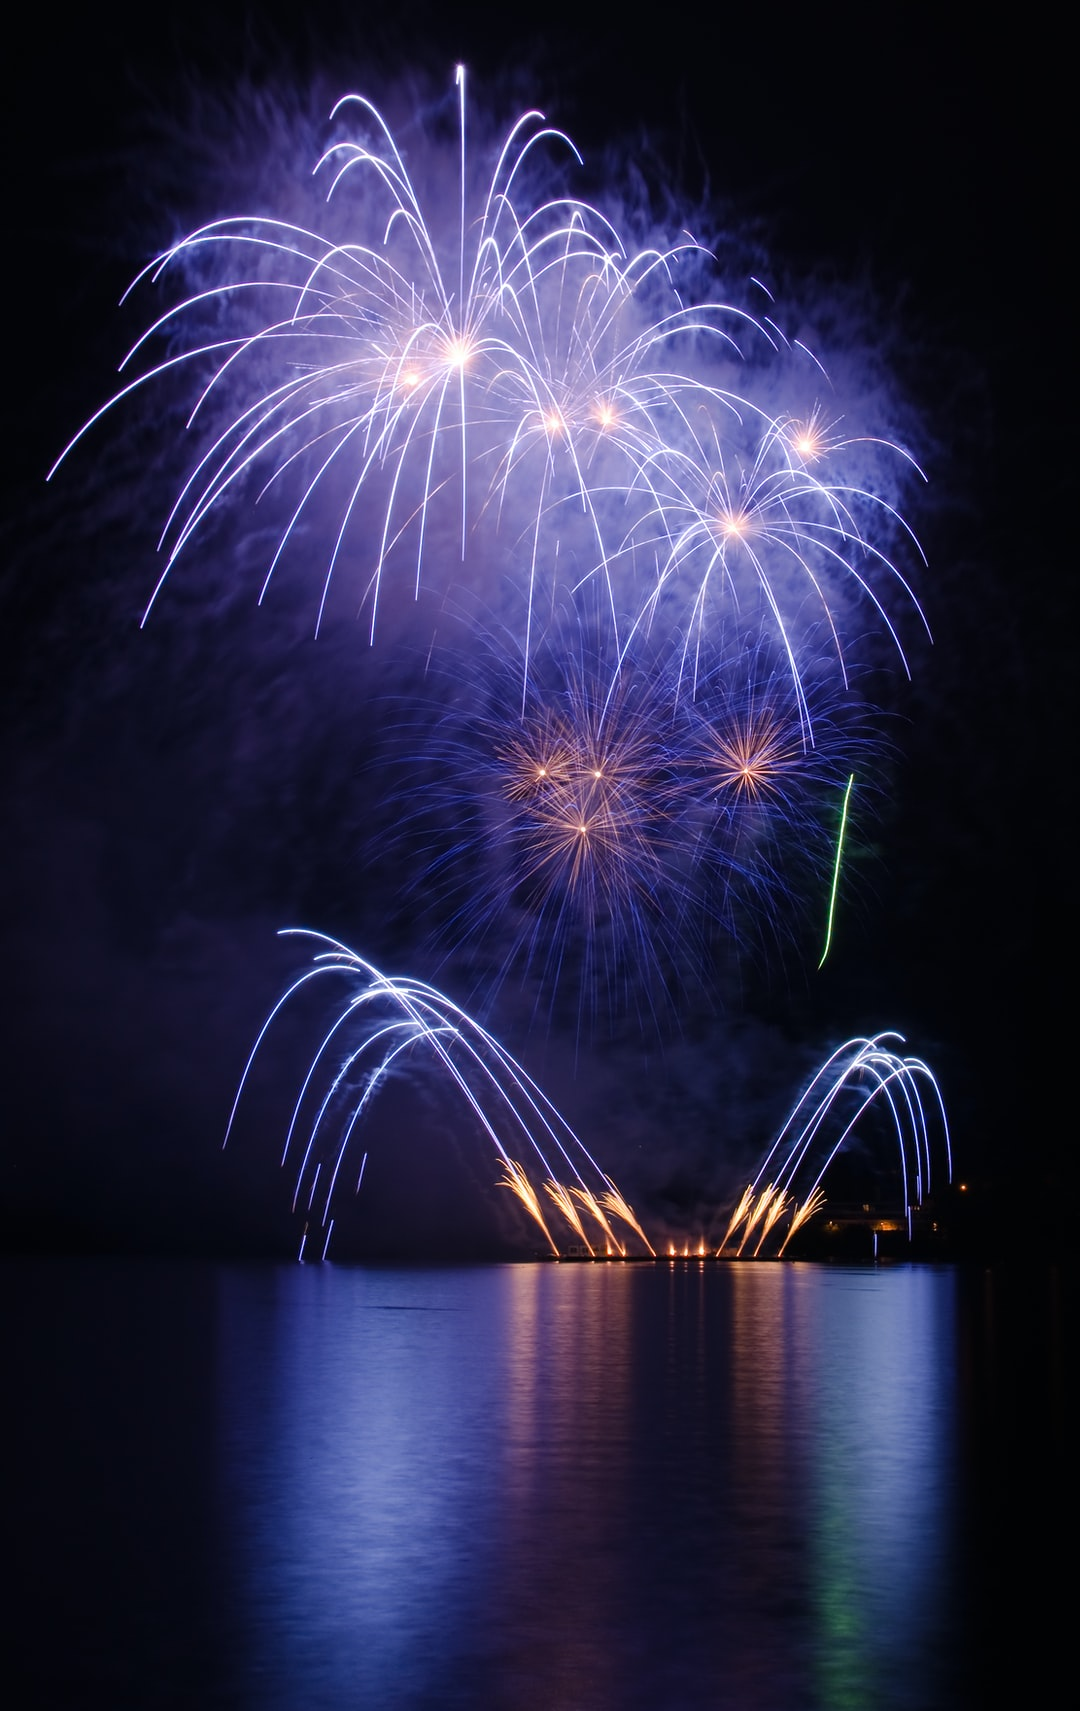 Fireworks show above the lake